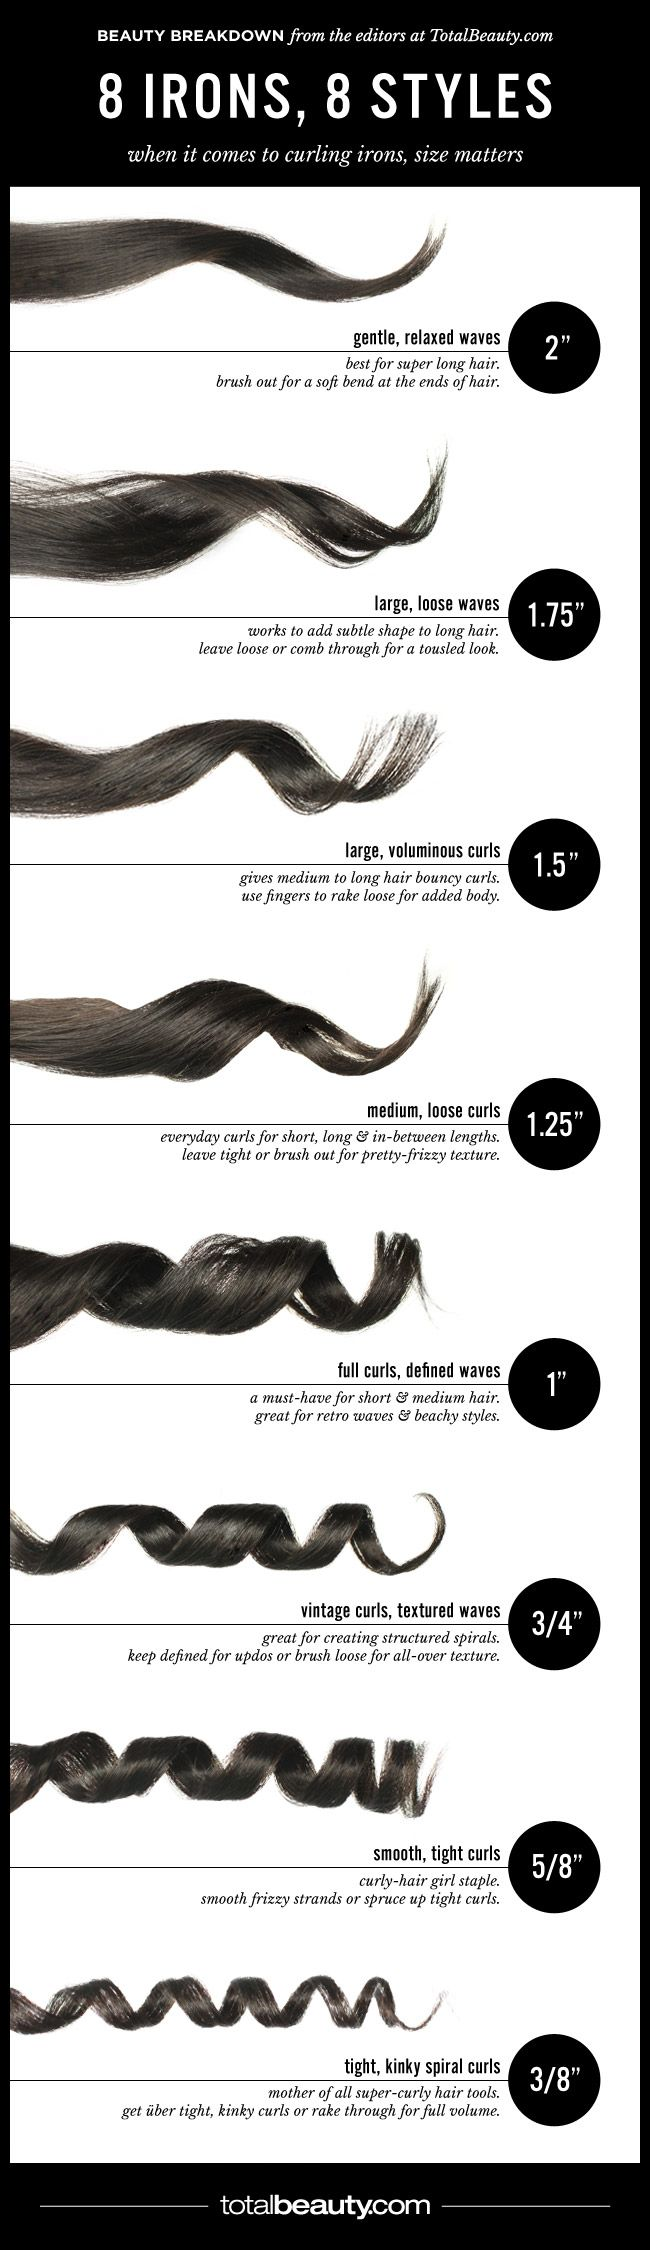 Curling Iron Line-Up: The Right Wand for Every Curl. Here's how to choose the right barrel for your look.